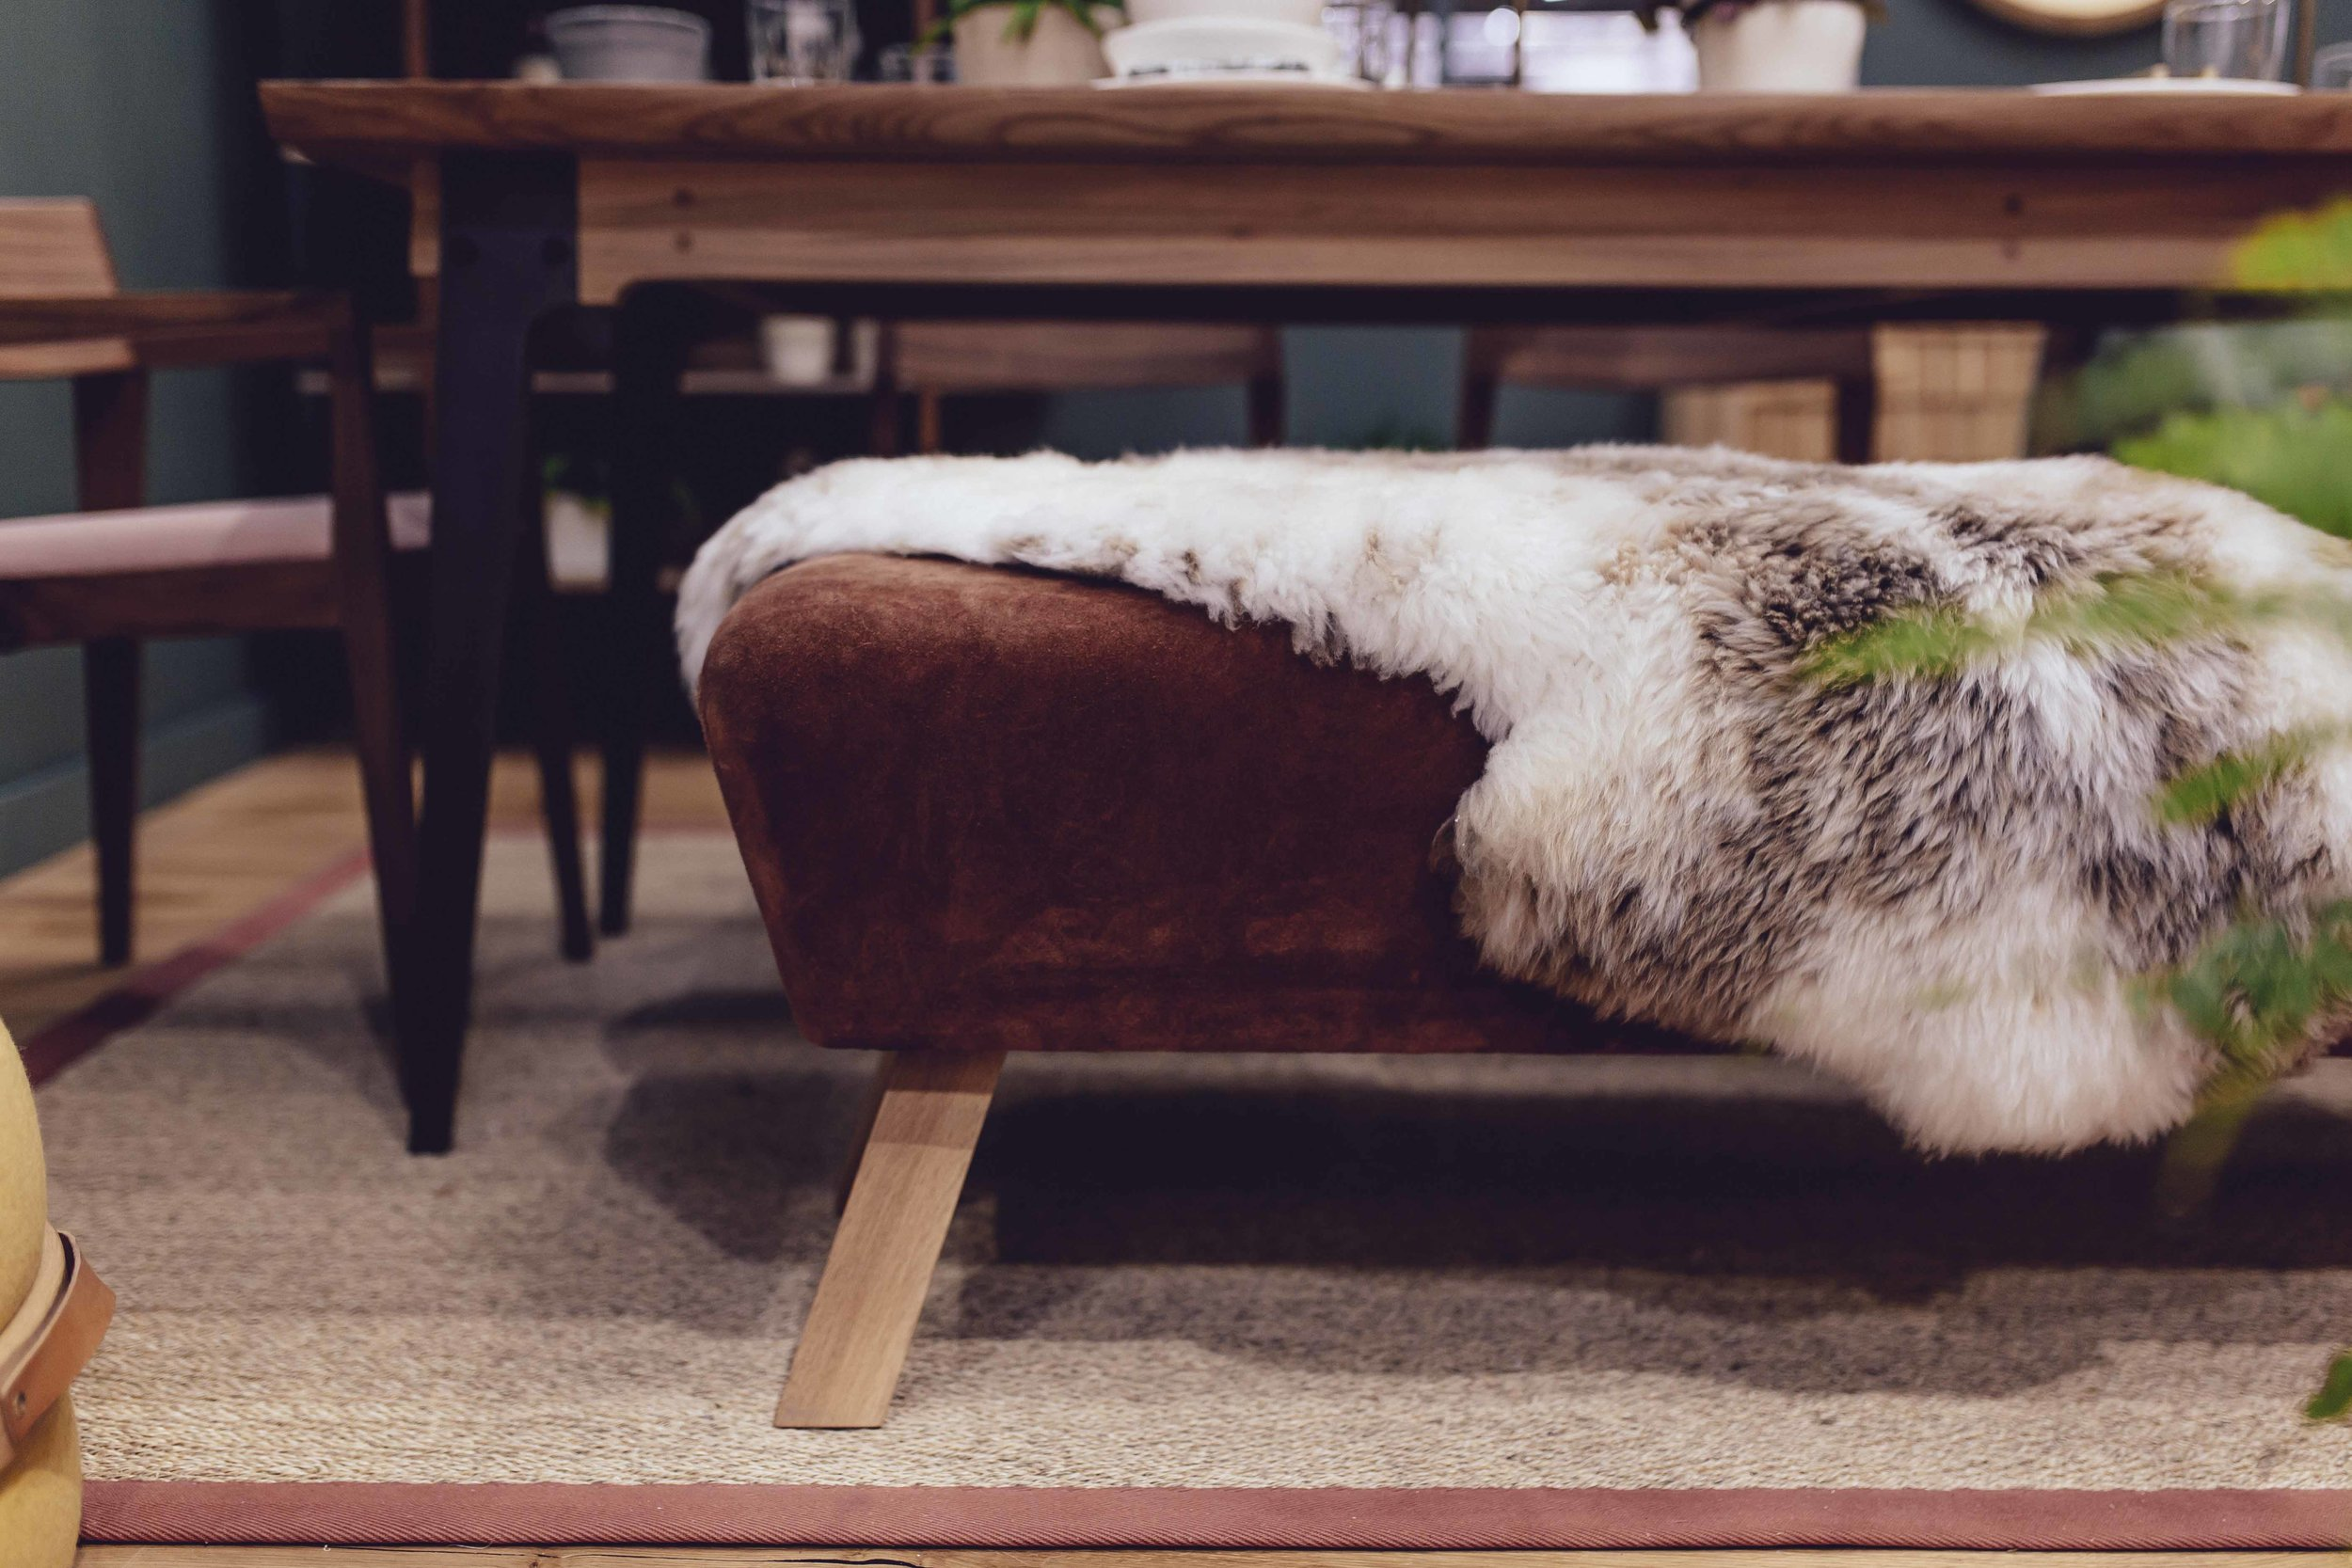 benchmark-pig-bench-suede-grand-designs-boxx-creative.jpg